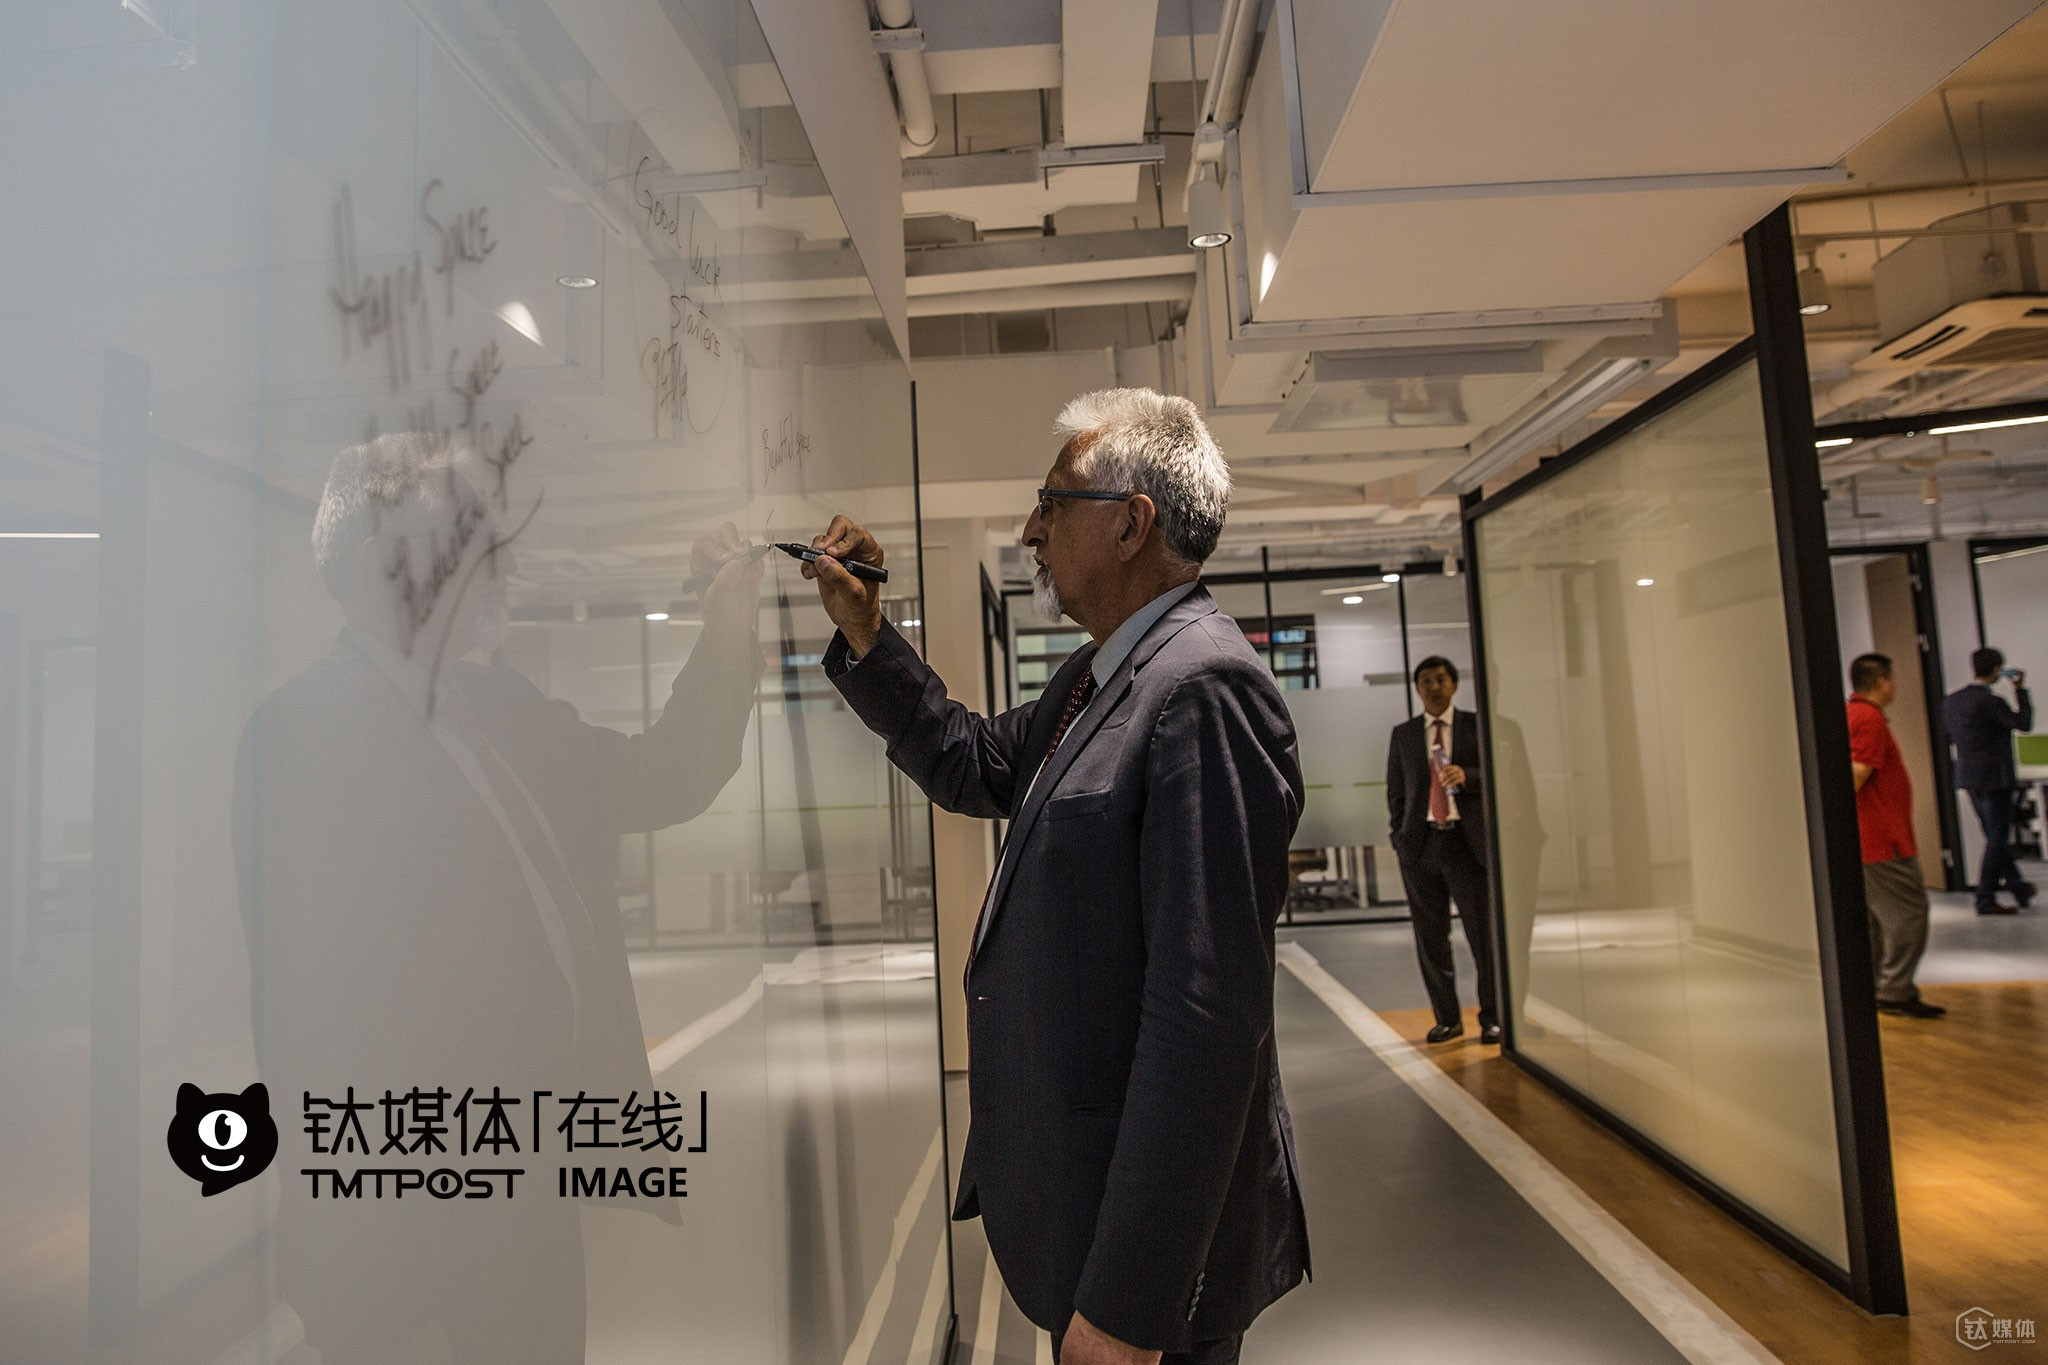 Silicon Valley mayors were invited to visit the new work place of Plug and Play in Shanghai. Eduardo Martinez, vice mayor of Richmond, wrote on the glass wall in the public hall: Work happily, enjoy life. Plug and Play is a well-know American incubator based in Silicon Valley. Up till now, it has already set up offices in Shanghai, Suzhou, Chongqing, etc.